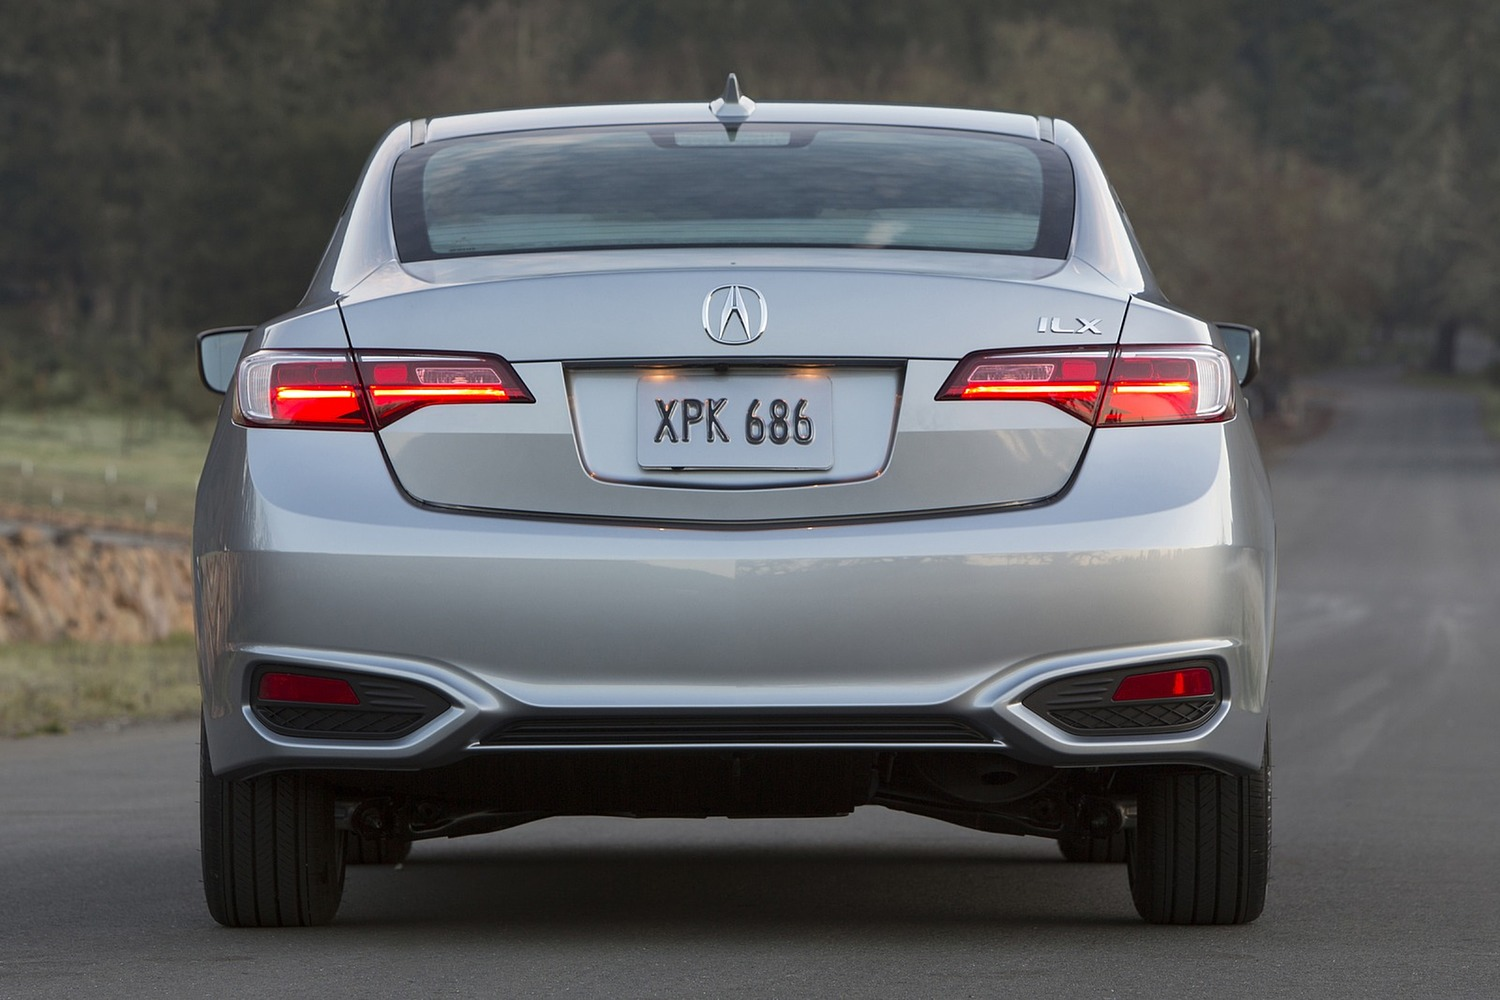 Acura ILX Technology Plus Package Sedan Exterior Shown (2016 model year shown)